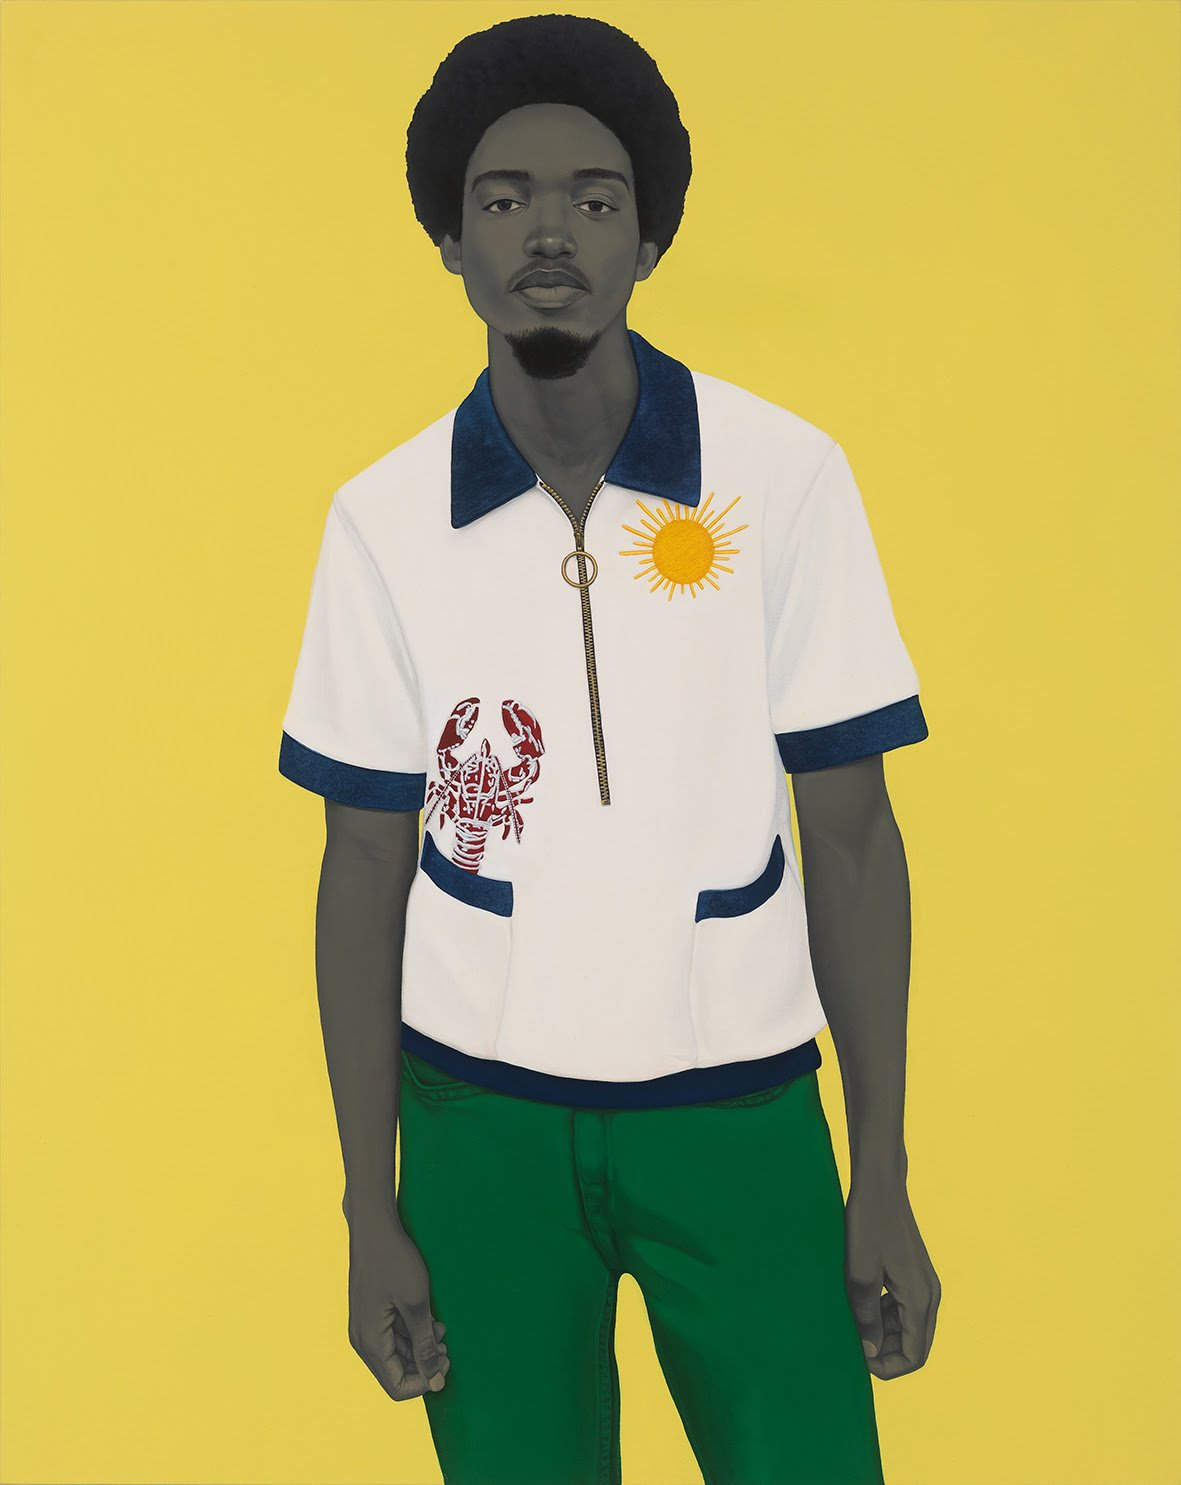 Amy Sherald, A bucket full of treasures (Papa gave me sunshine to put in my pockets...), 2020. Oil on canvas. 137.2 x 109.2 x 6.4 cm / 54 x 43 x 2 1/2 in. © Amy Sherald